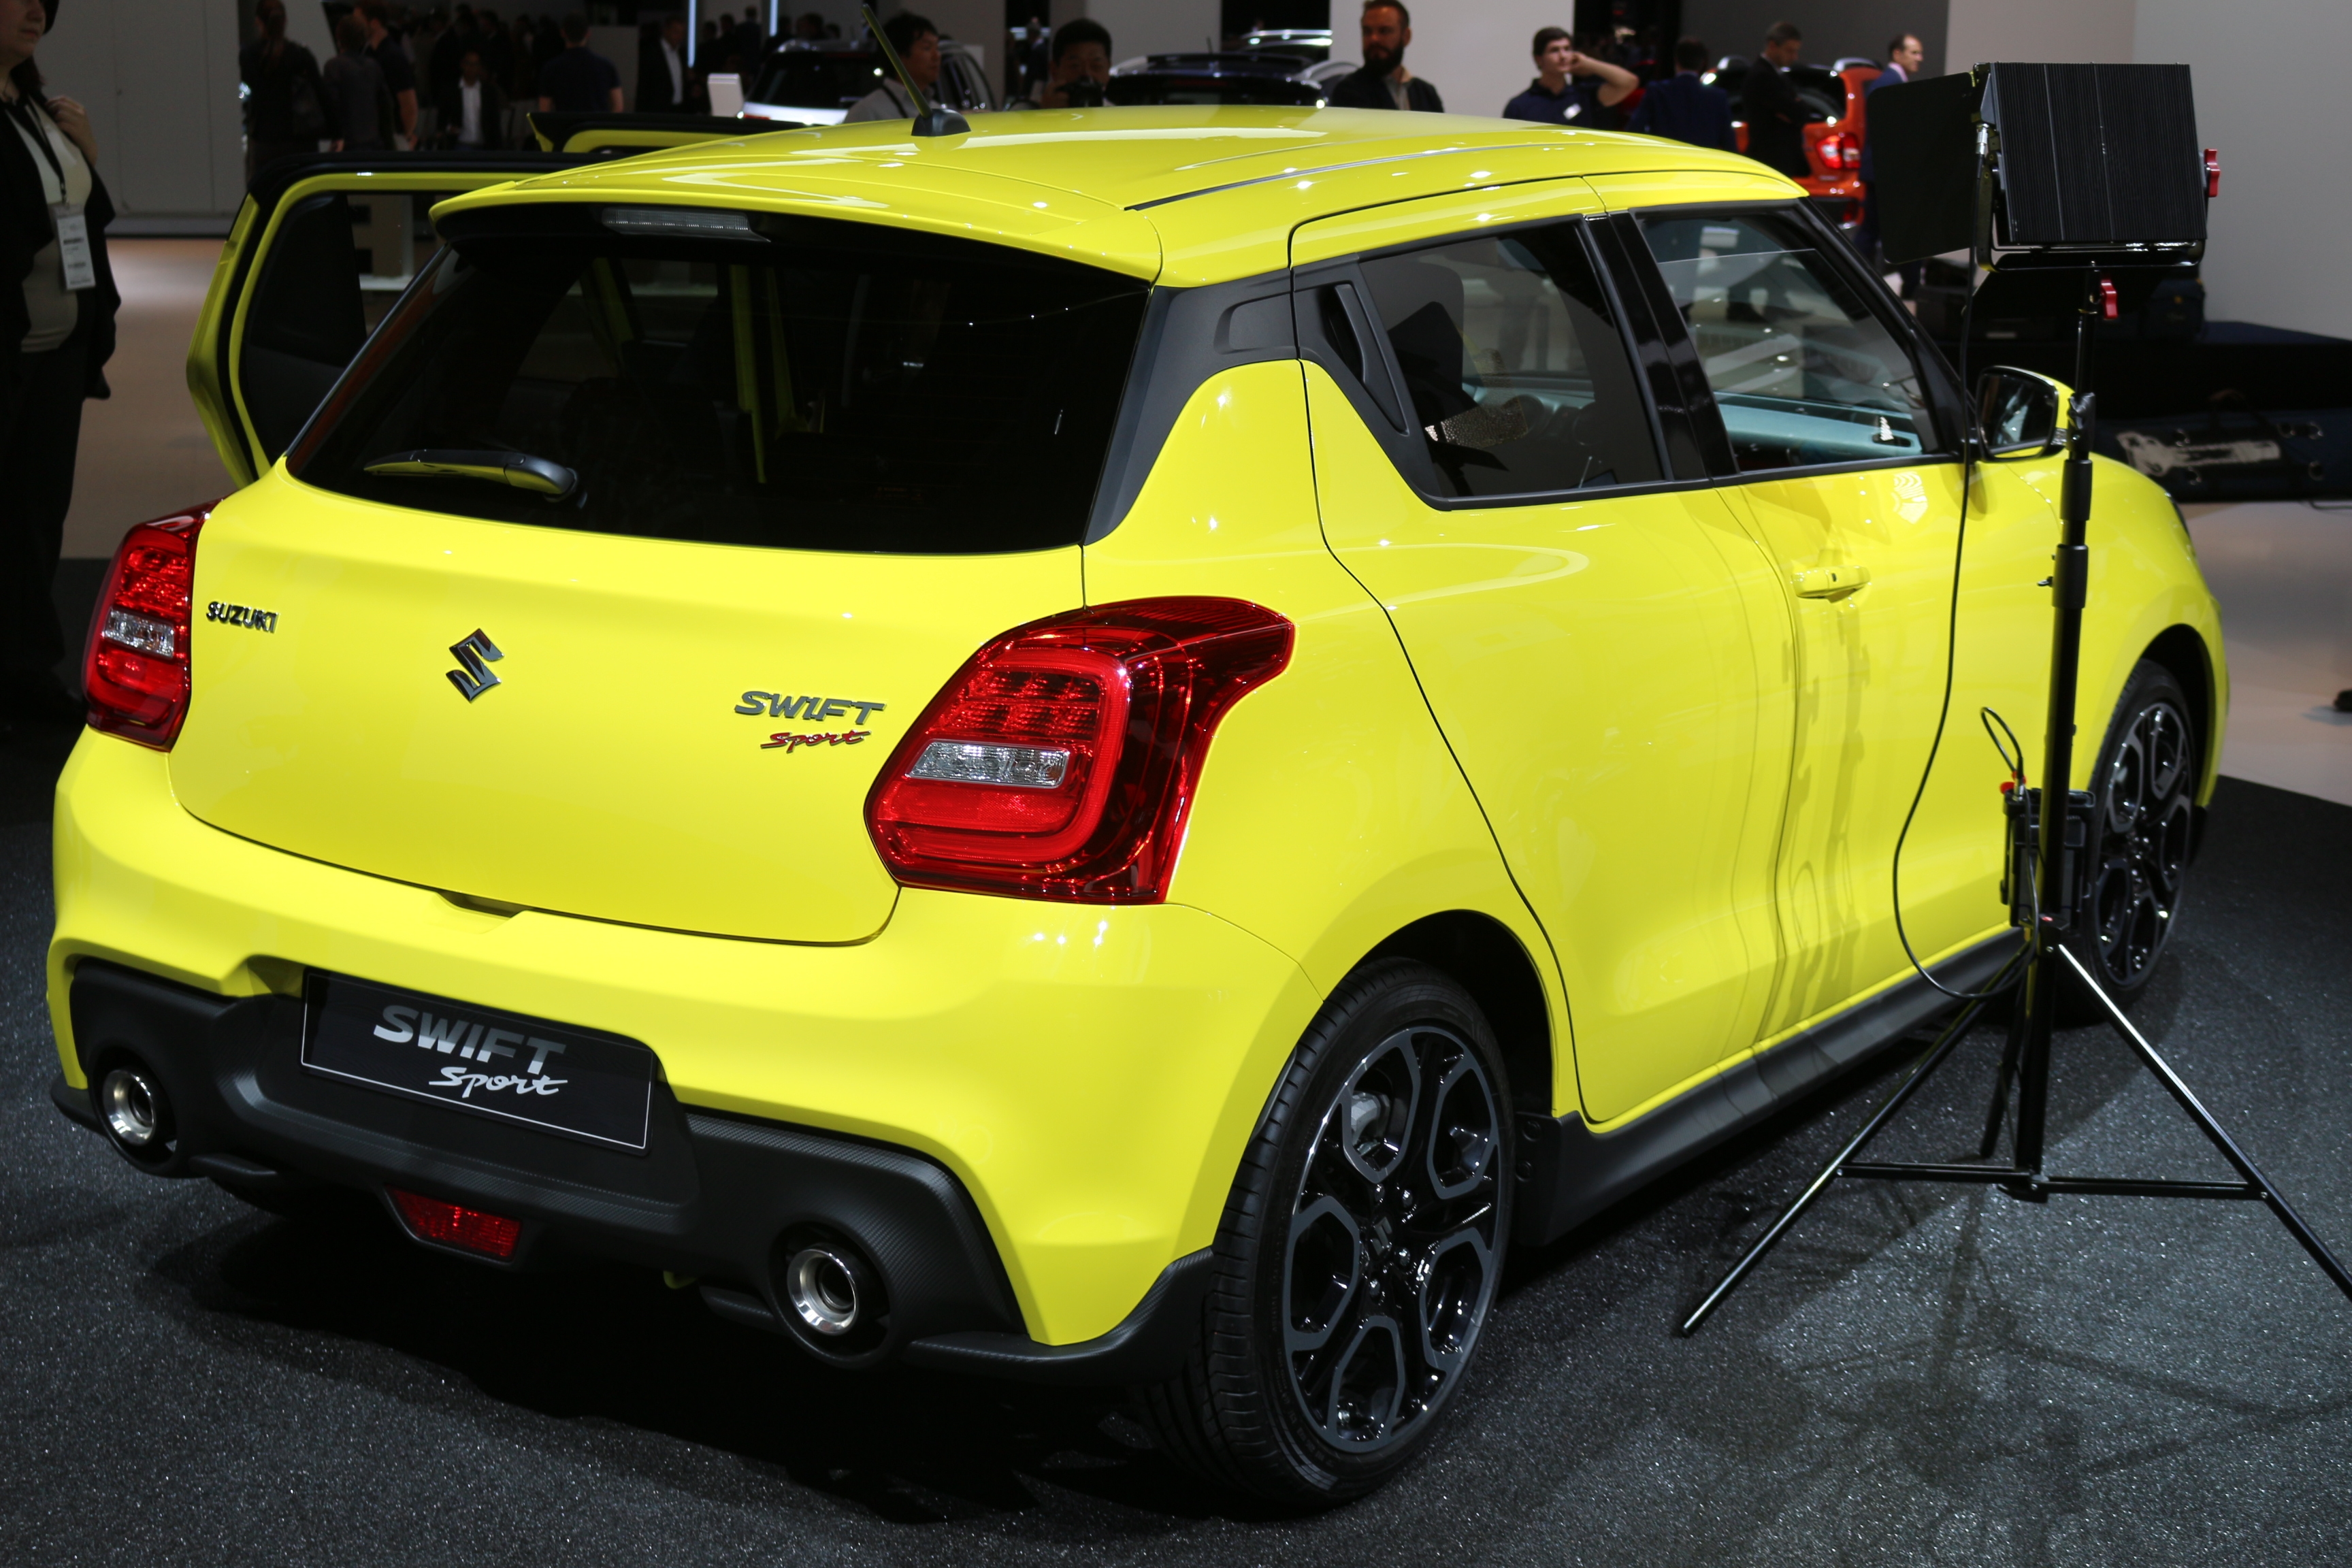 [Image: S0-salon-de-francfort-2017-suzuki-swift-...528798.jpg]